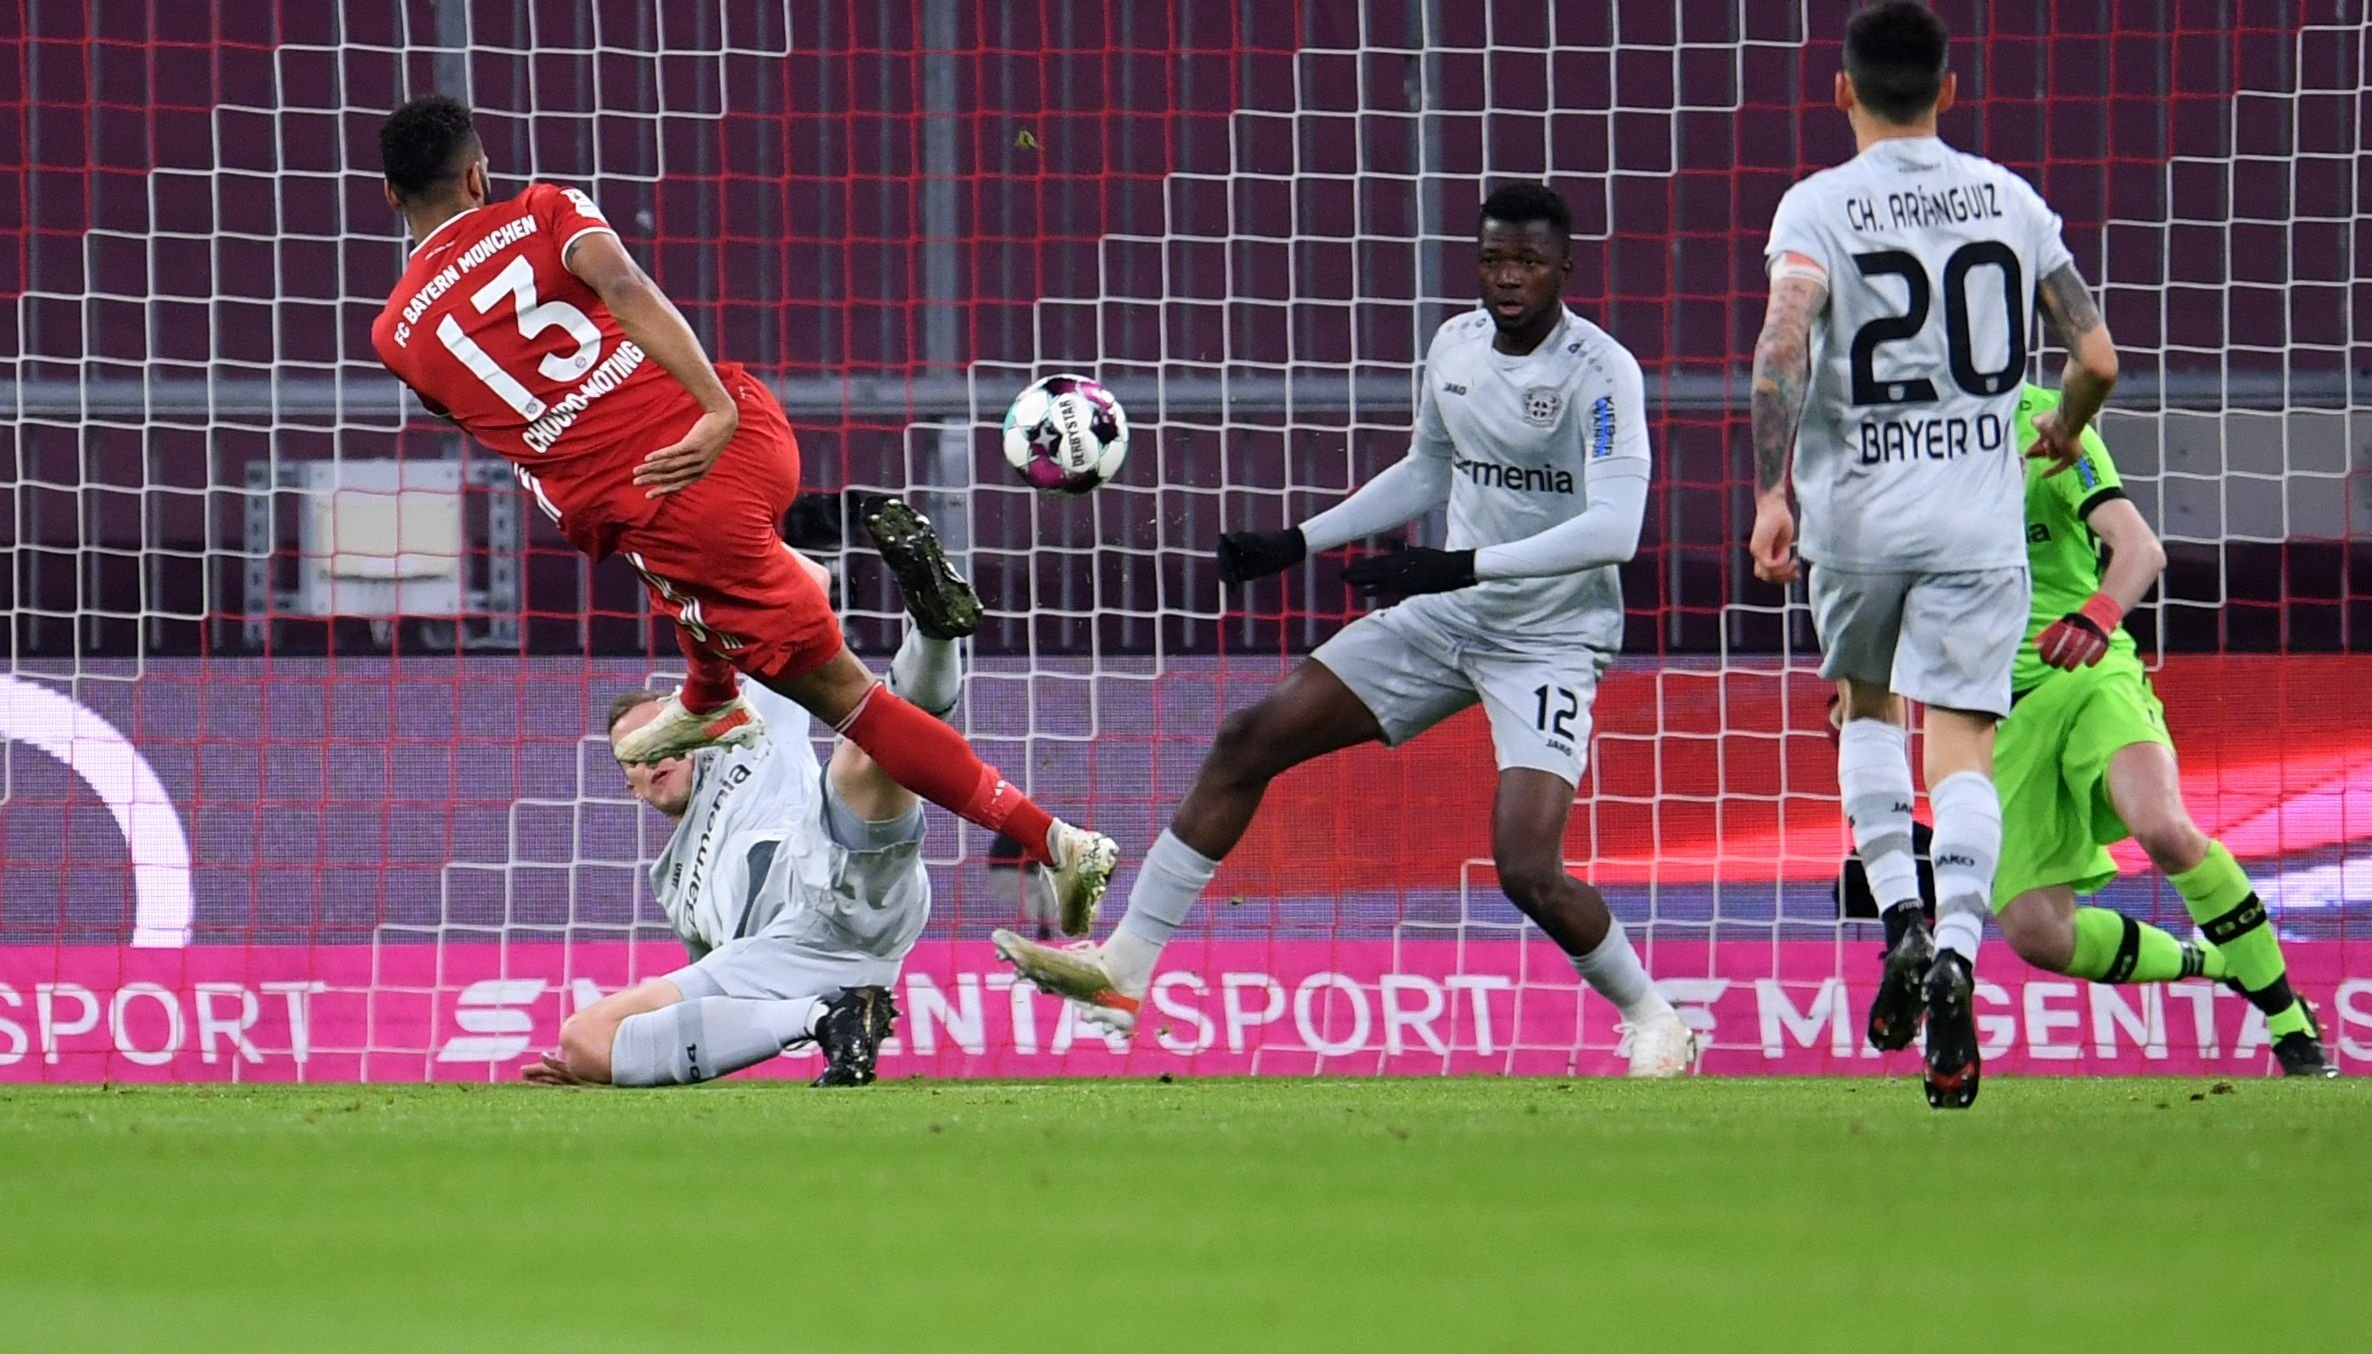 Bayern Munich's Cameroonian forward Eric Maxim Choupo-Moting (L) scores the opening goal during the German first division Bundesliga football match against Bayer 04 Leverkusen in Munich, southern Germany, on April 20, 2021. (Andreas Gebert/DFL/Pool via AFP)